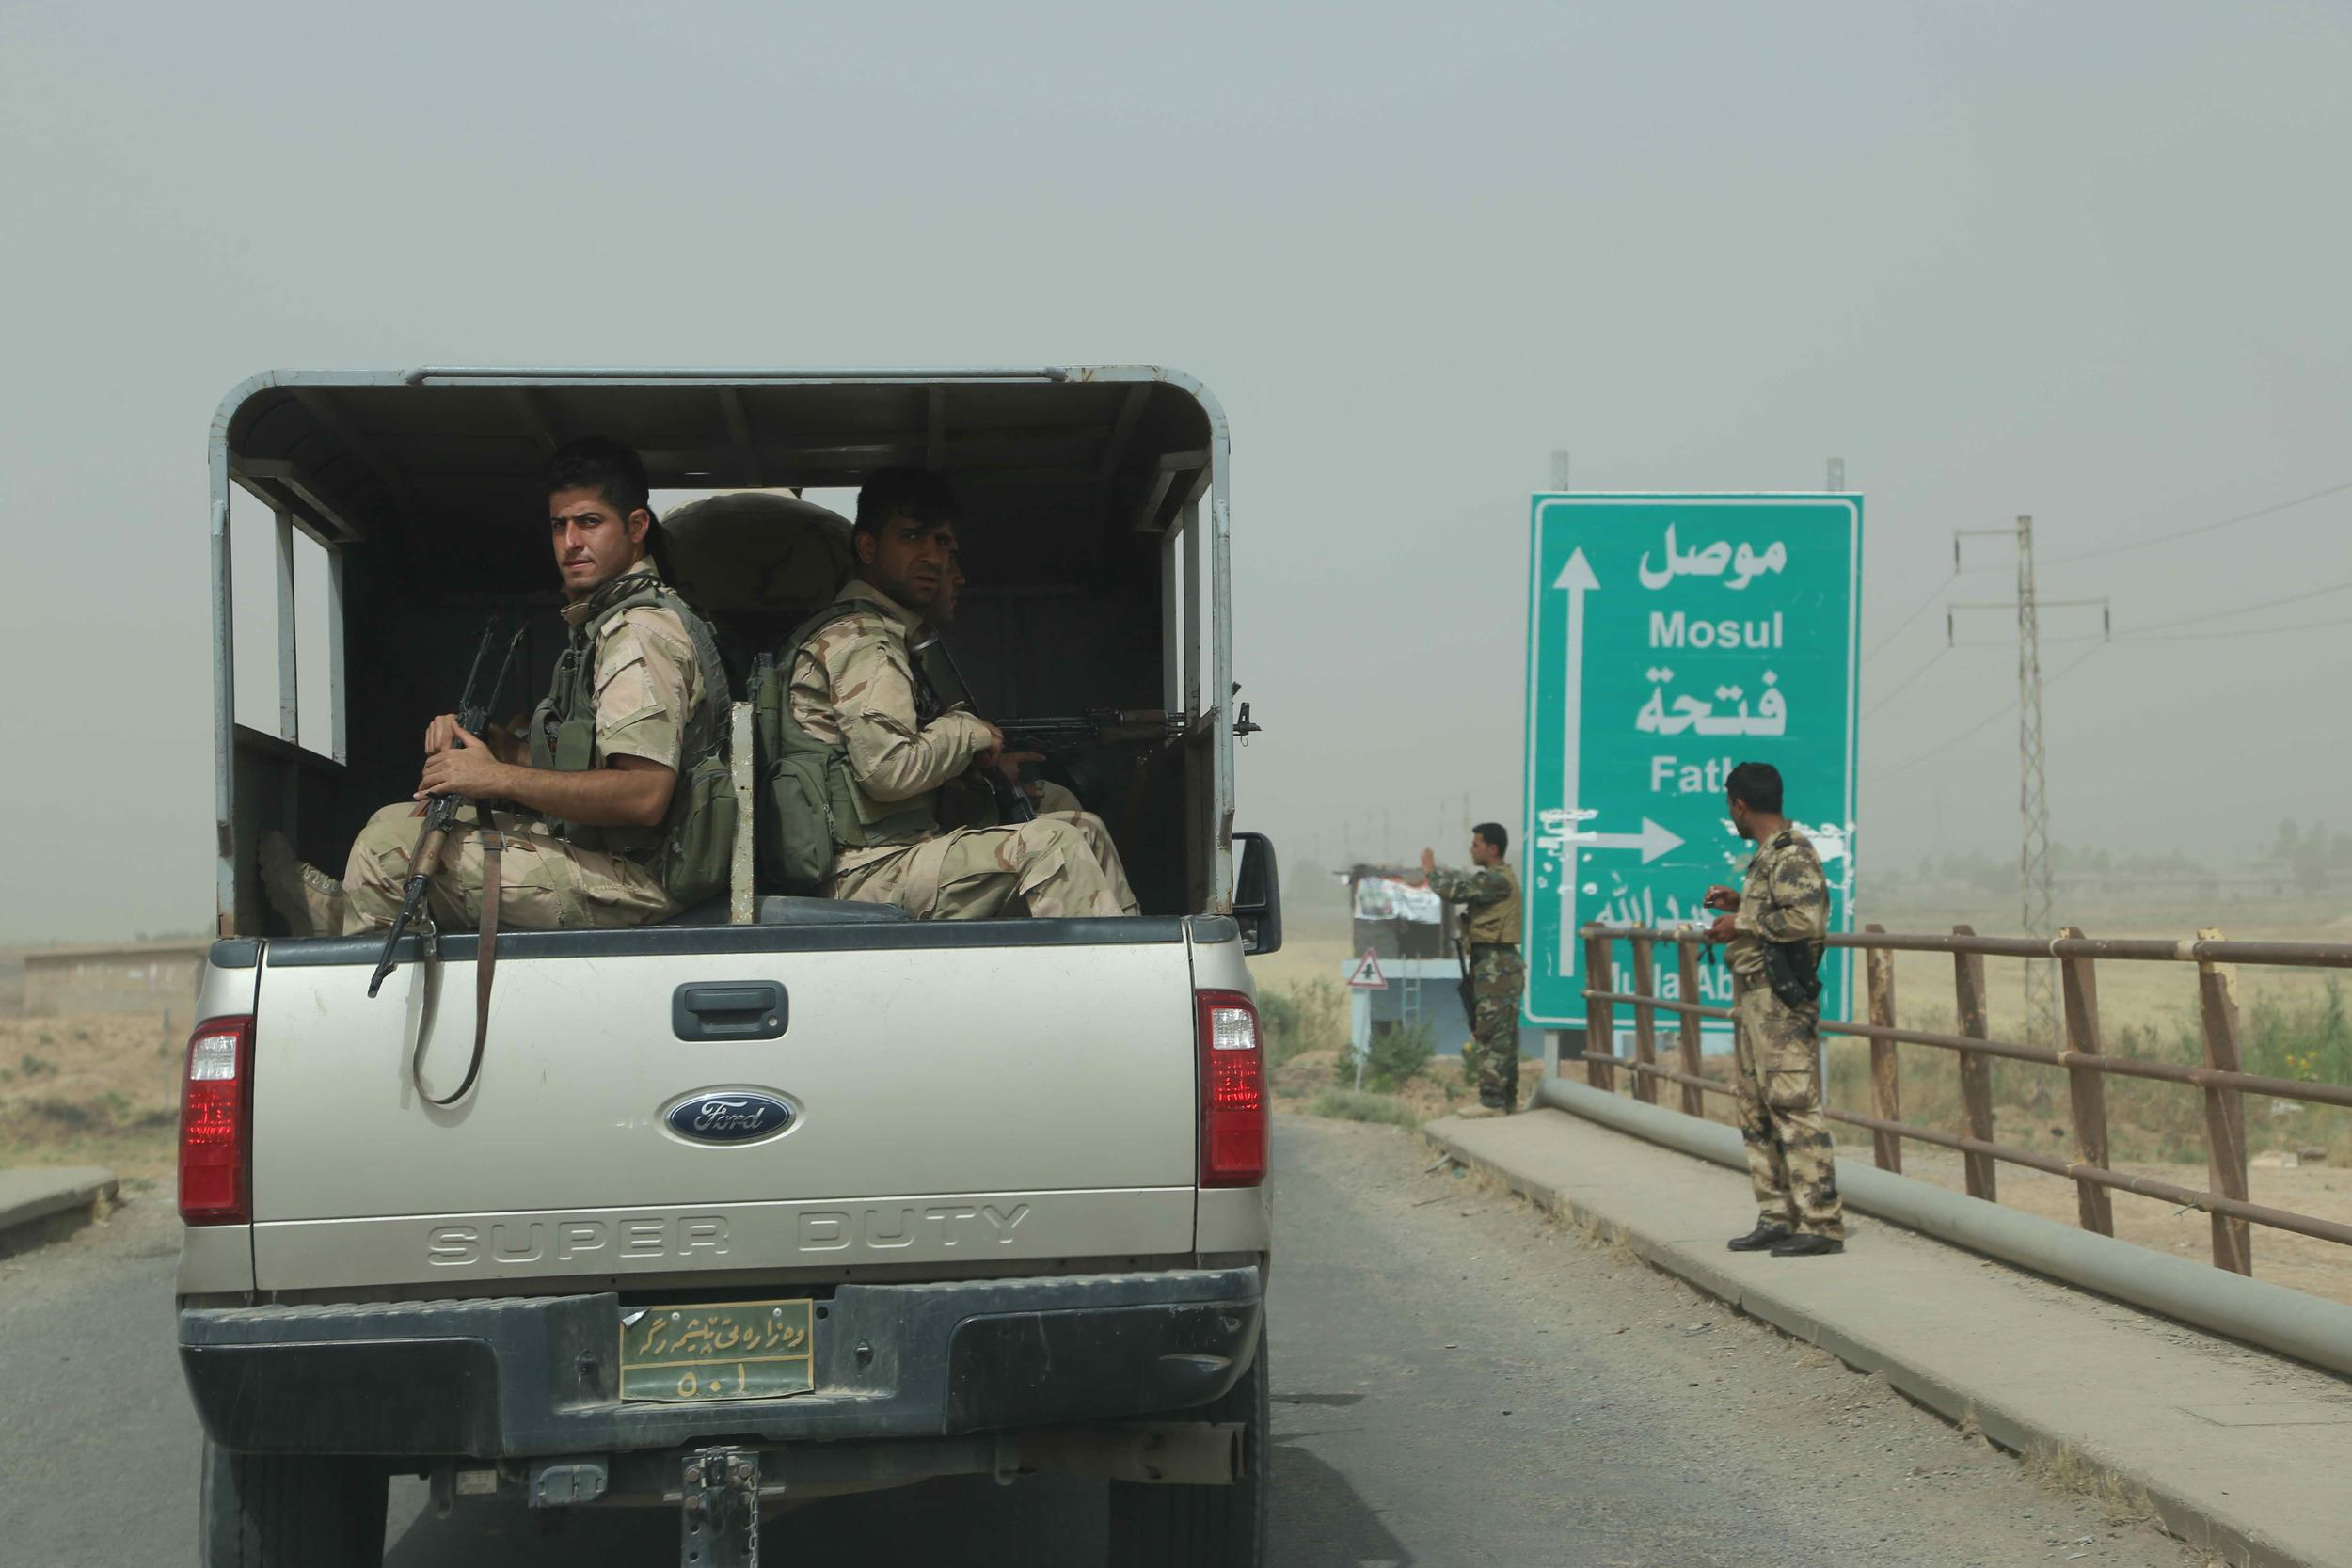 Stocks fell on Thursday as oil prices rose because of fighting in Iraq. Troops were deployed outside of the oil-rich city of Kirkuk, which was attacked by militants.